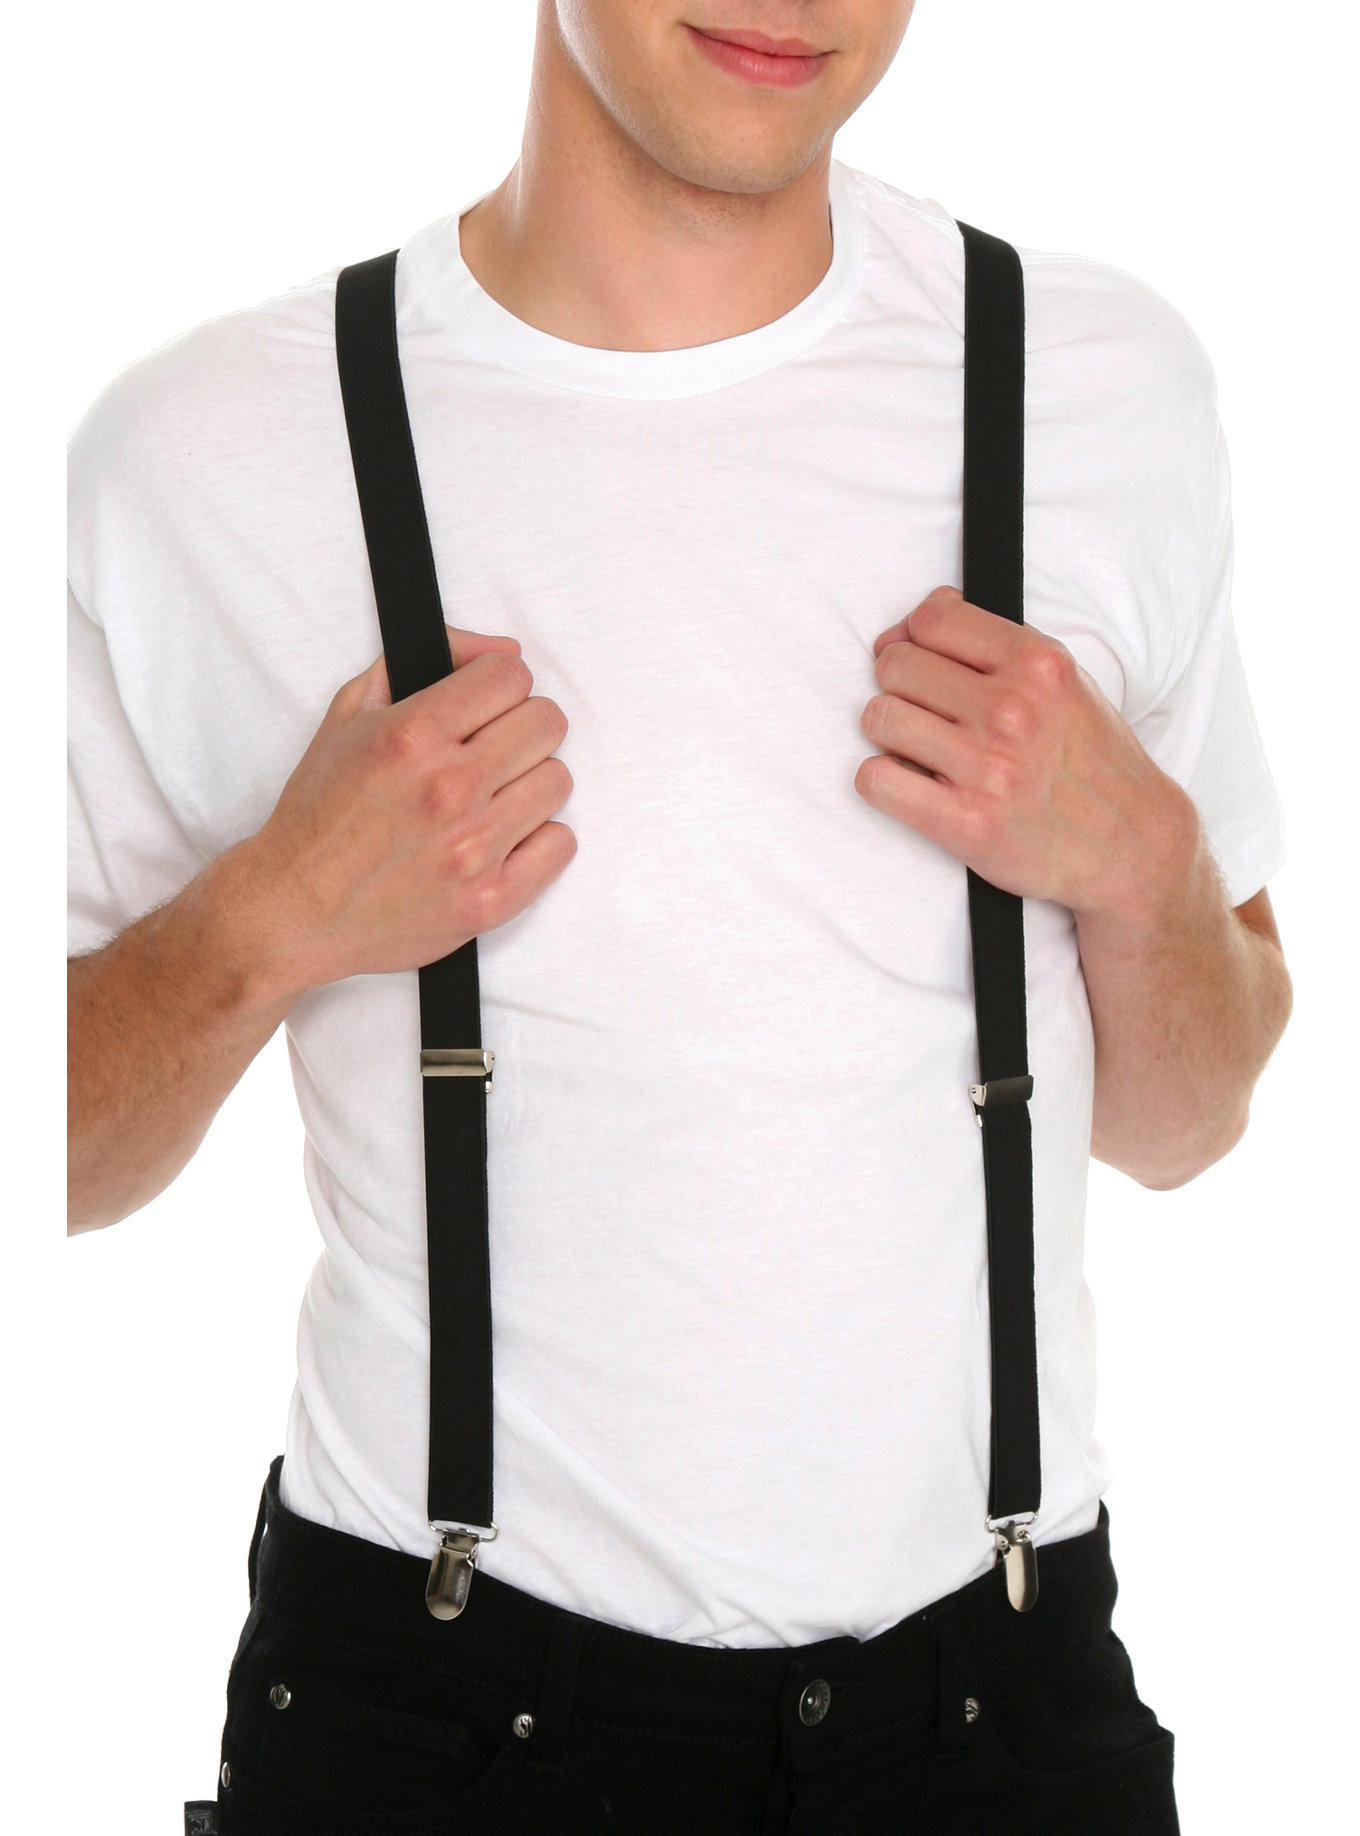 If you're going to be rocking suspenders and a suit, stick to buttons, please. Suspenders also look great with both your standard tie as well as the quirkier bow tie. If you're going to for a vintage look, don't be afraid to pair your bow tie and suspenders together.